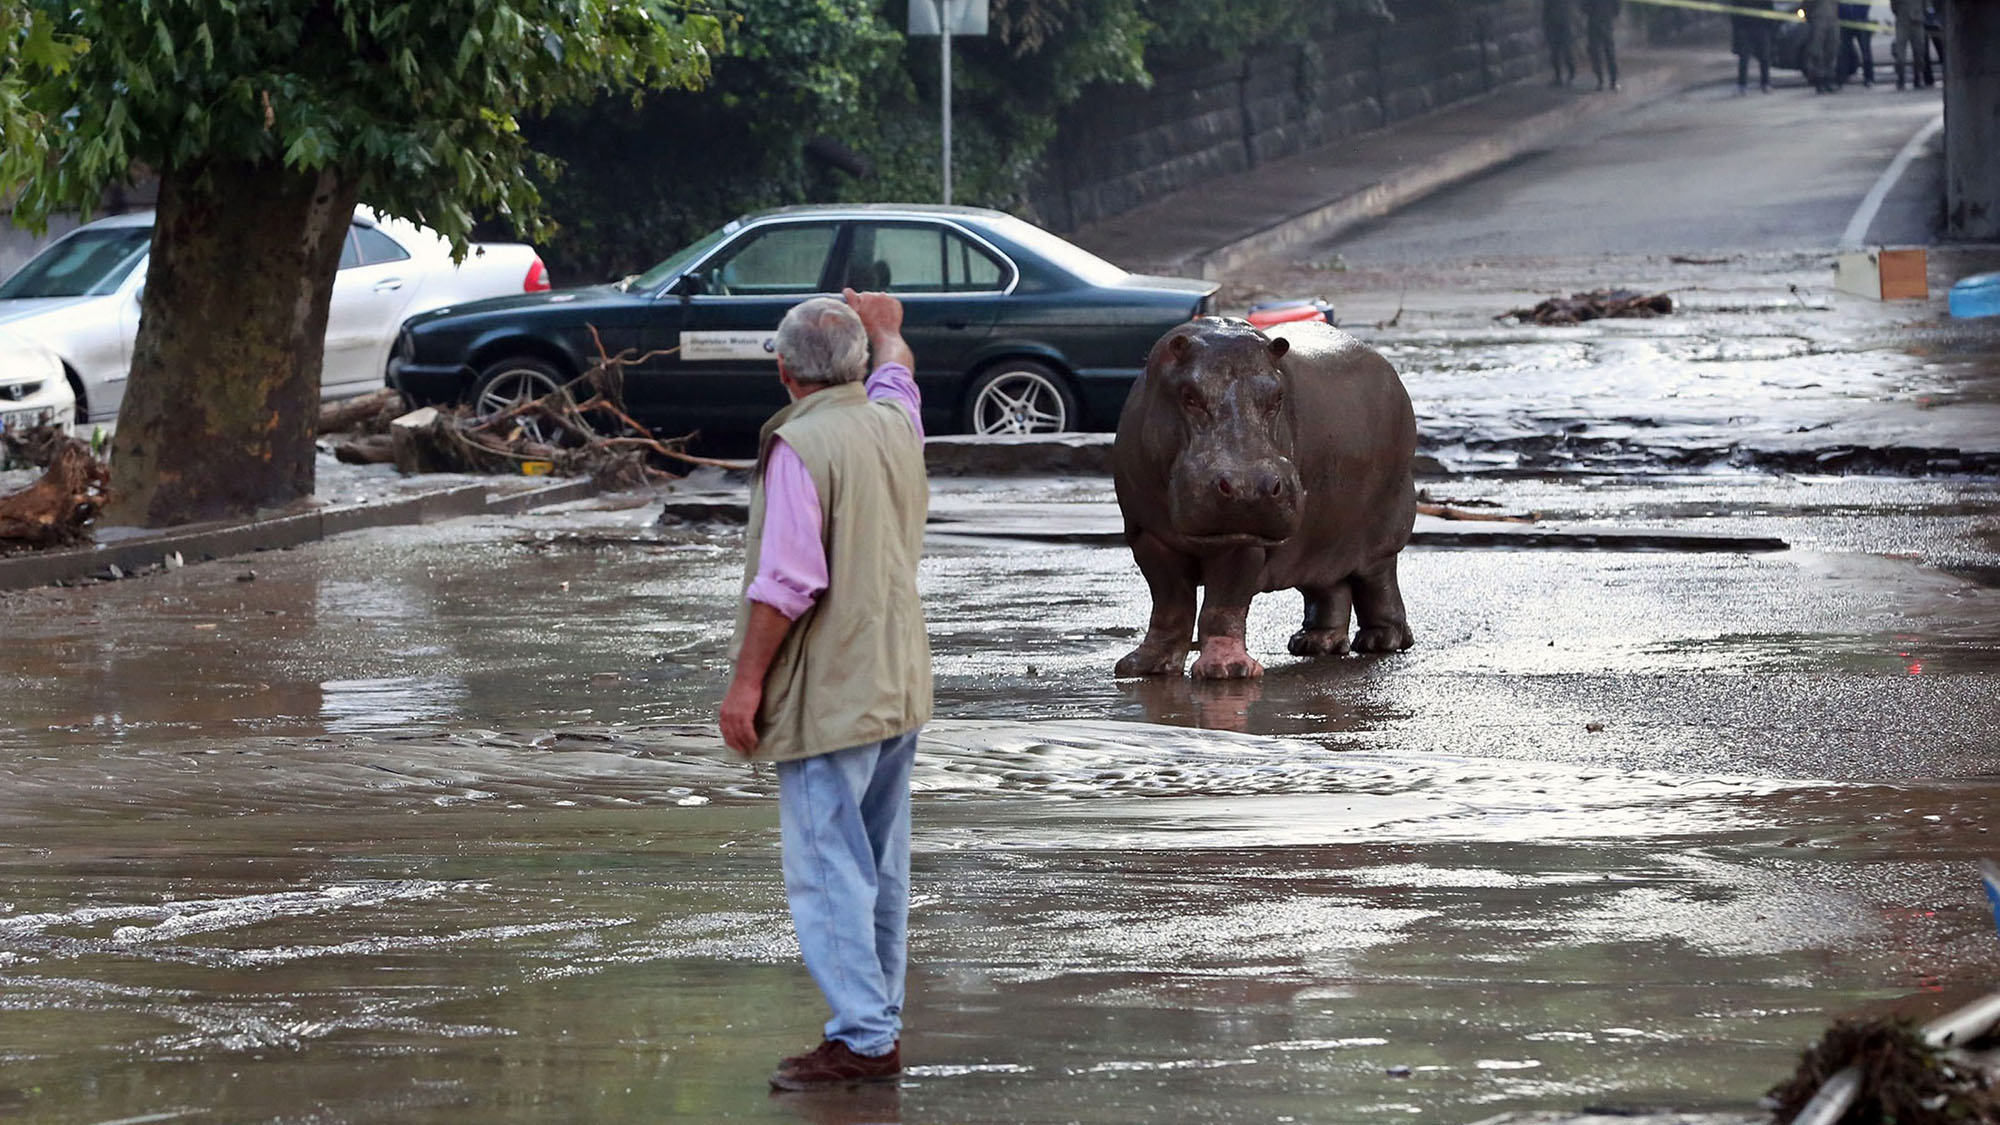 Zoo animals on the loose in Georgia after terrible flooding